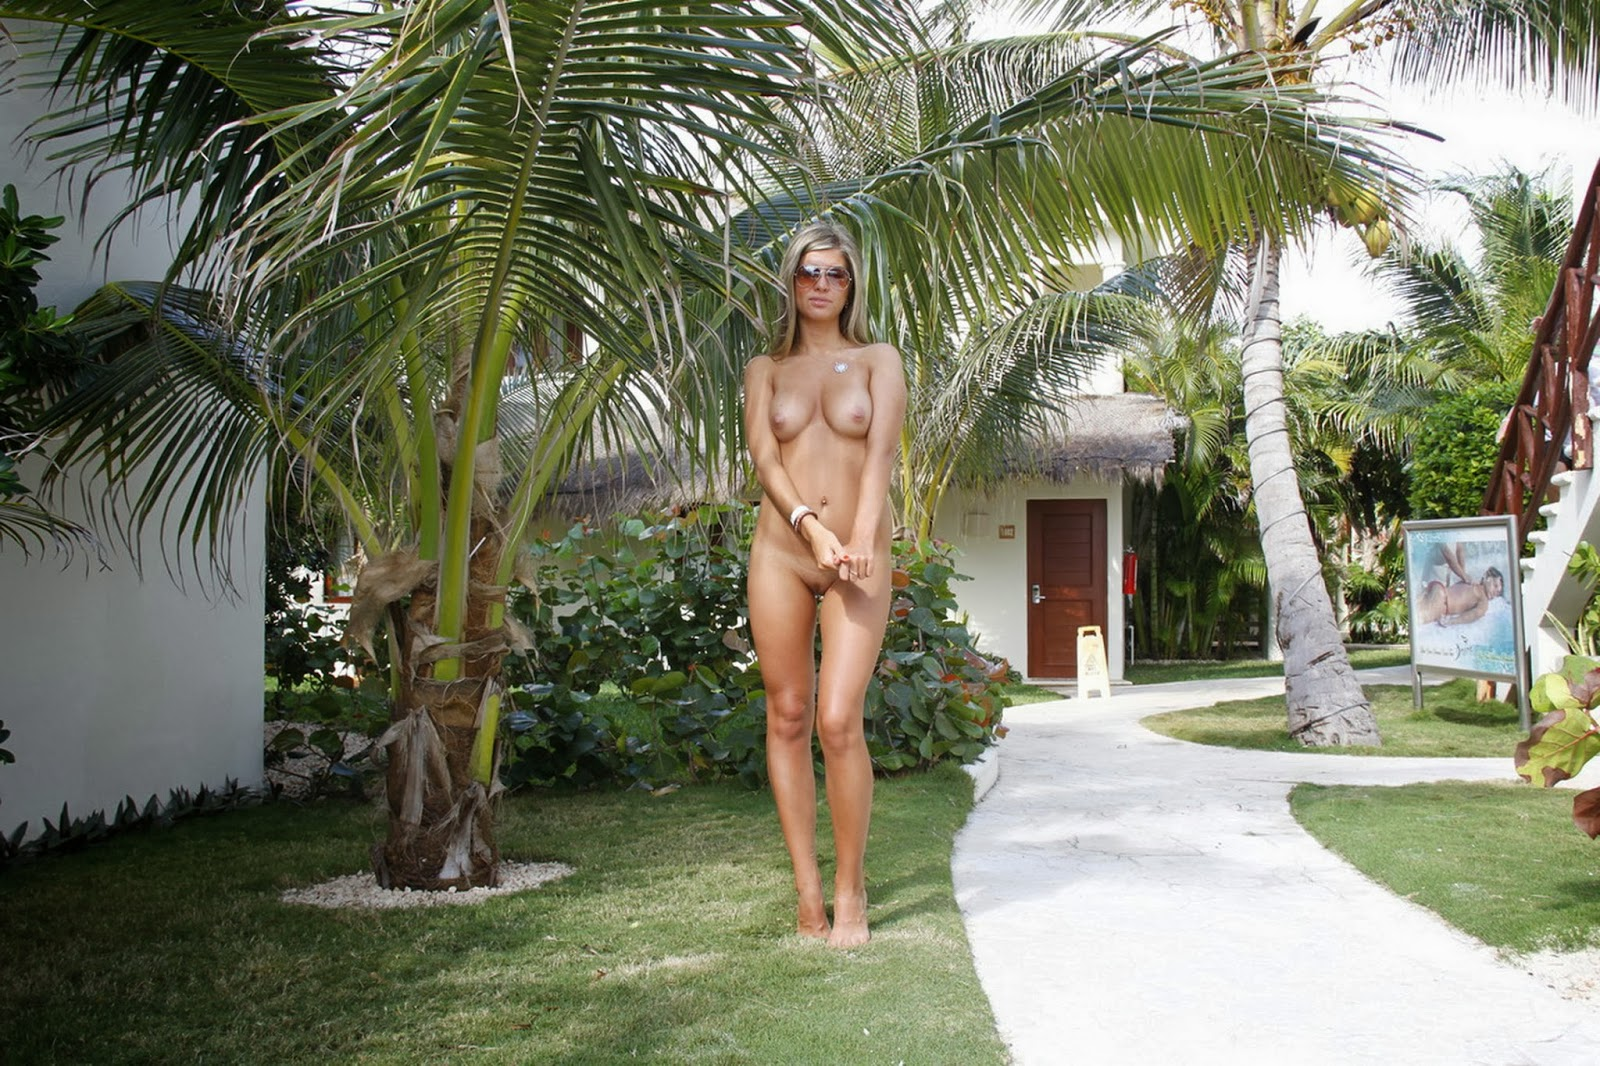 nudist resorts in cancun jpg 1200x900